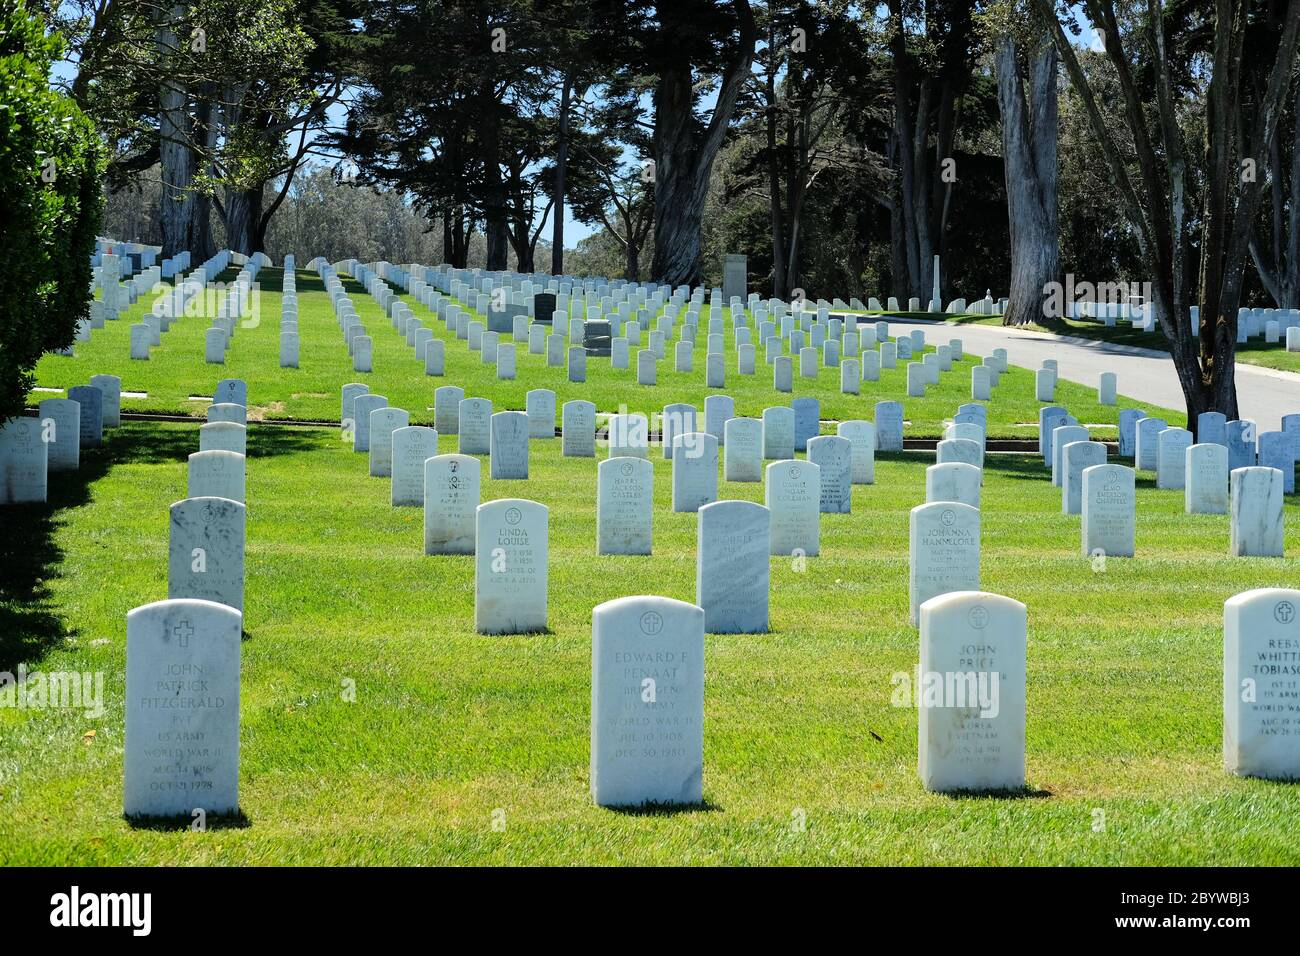 White tombstones rows at the San Francisco National Cemetery, a United States national cemetery, located in the Presidio of San Francisco, California. Stock Photo